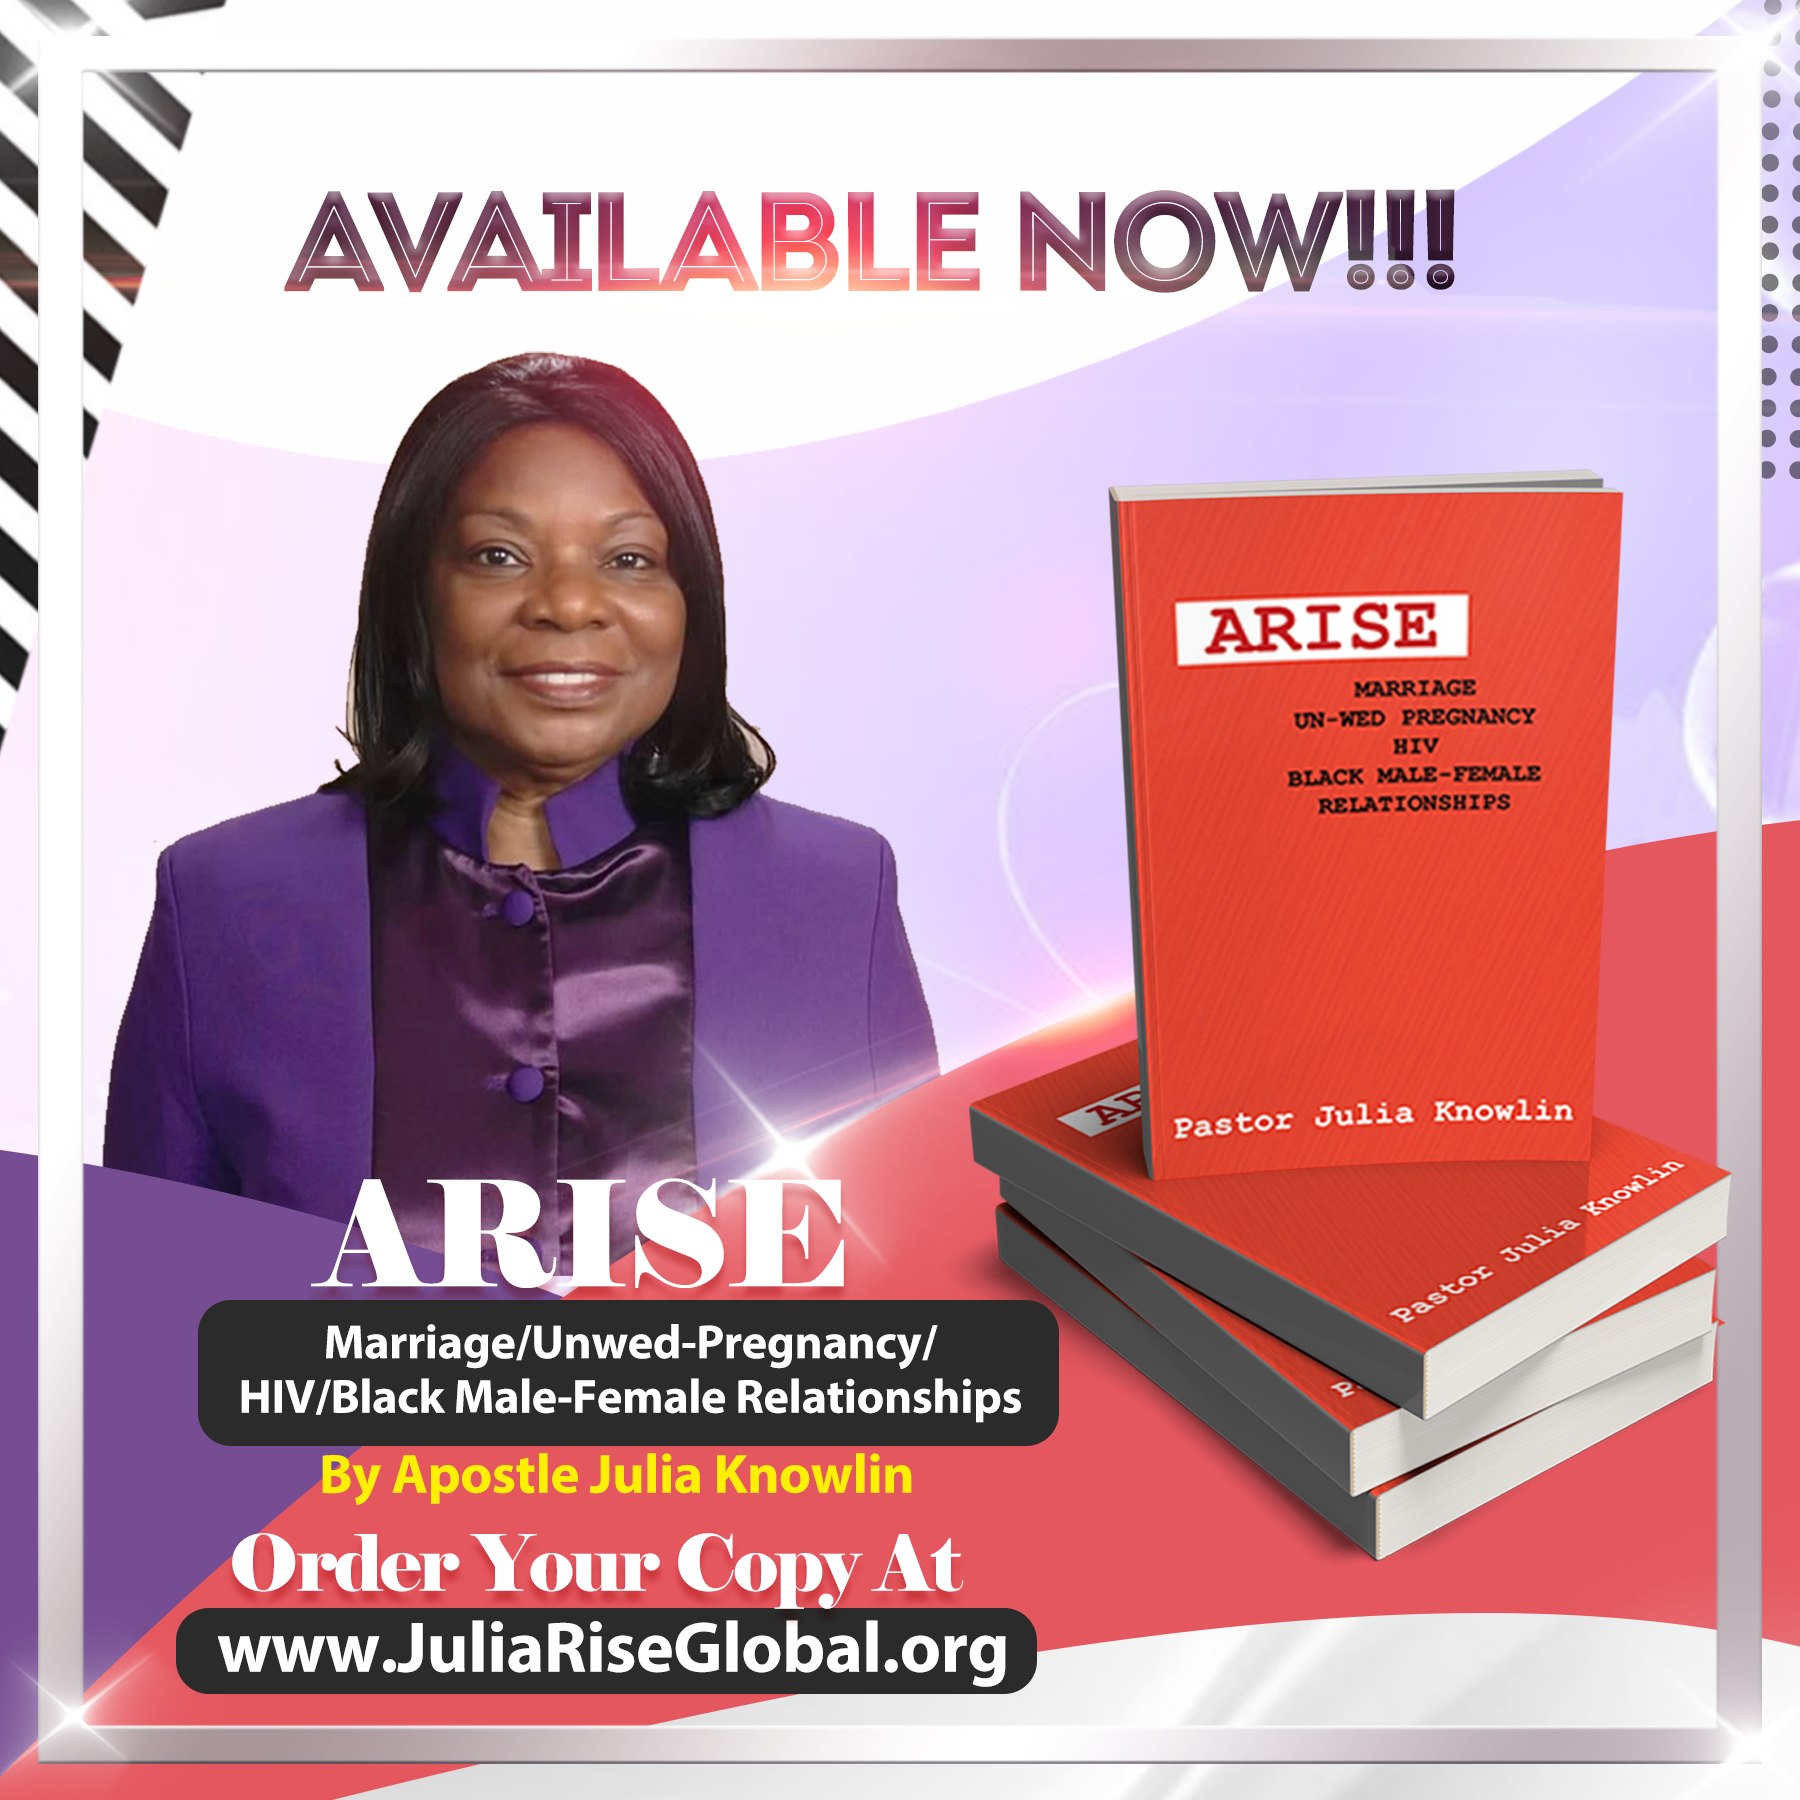 ARISE: MARRIAGE-UNWED PREGNANCY-HIV-BLACK MALE-FEMALE RELATIONSHIPS by Pastor Julia Knowlin